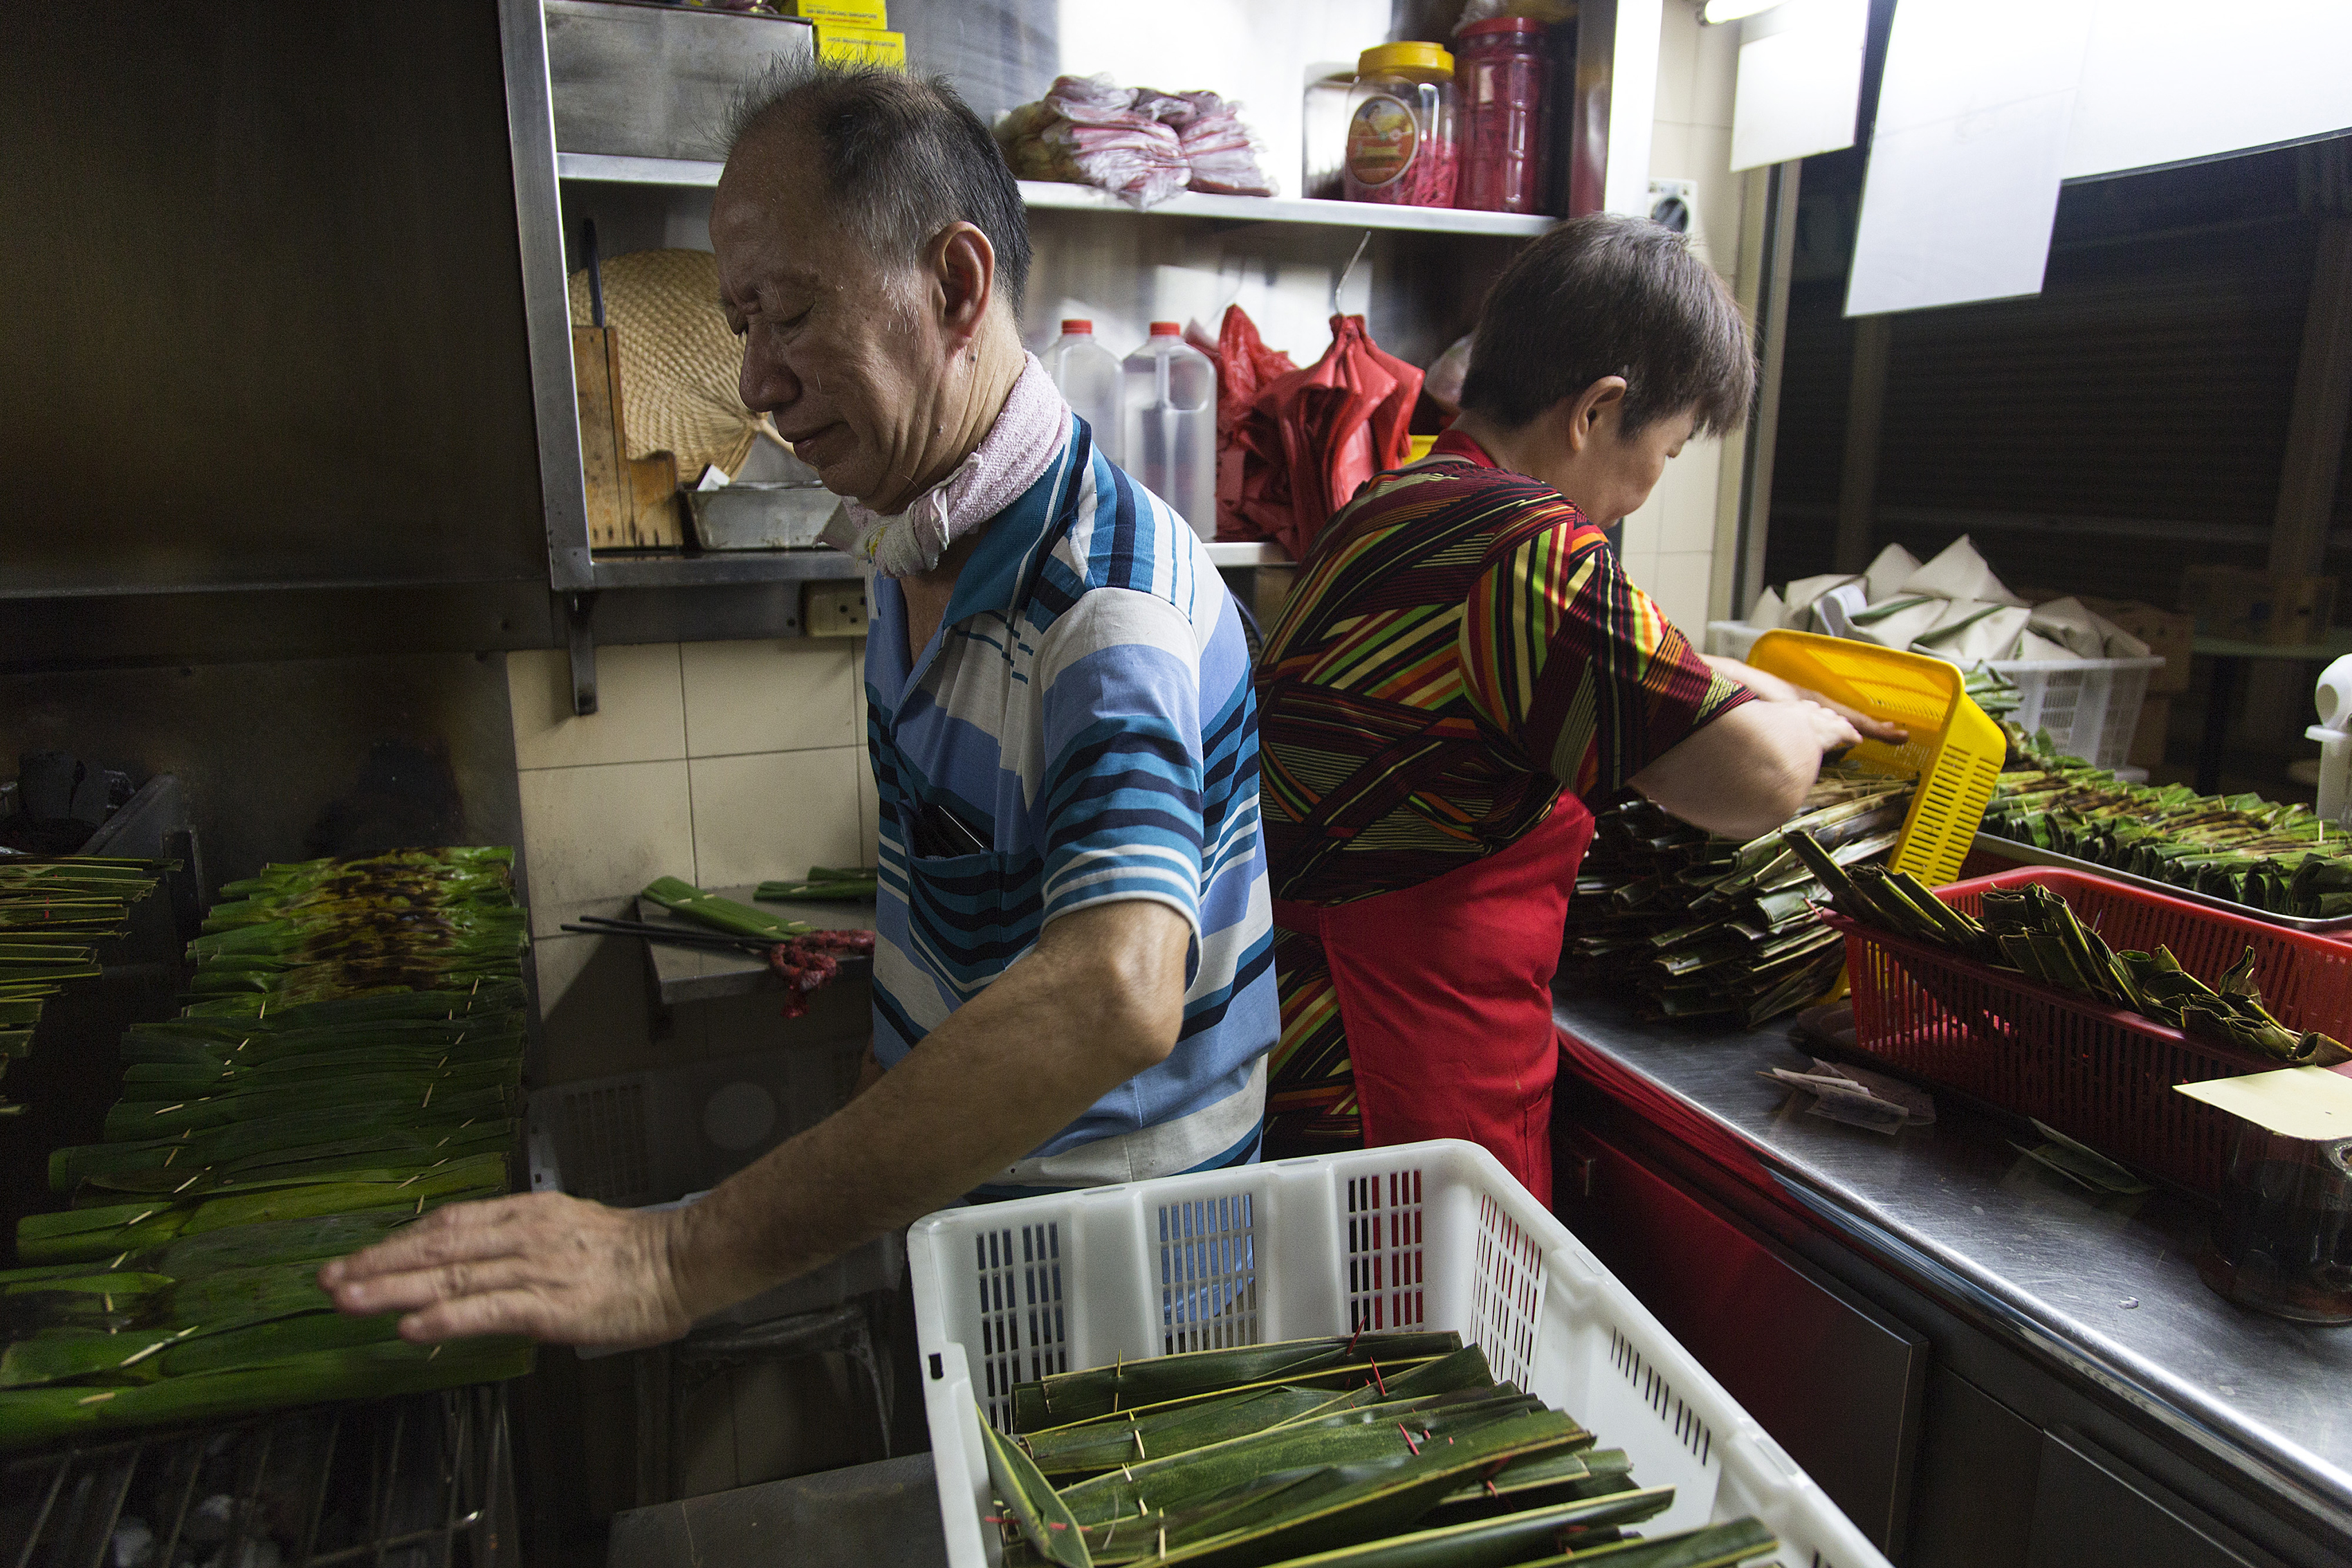 Tan Beng and Tee Ai Geok prepare otah in their stall at Old Airport Road Food Centre.